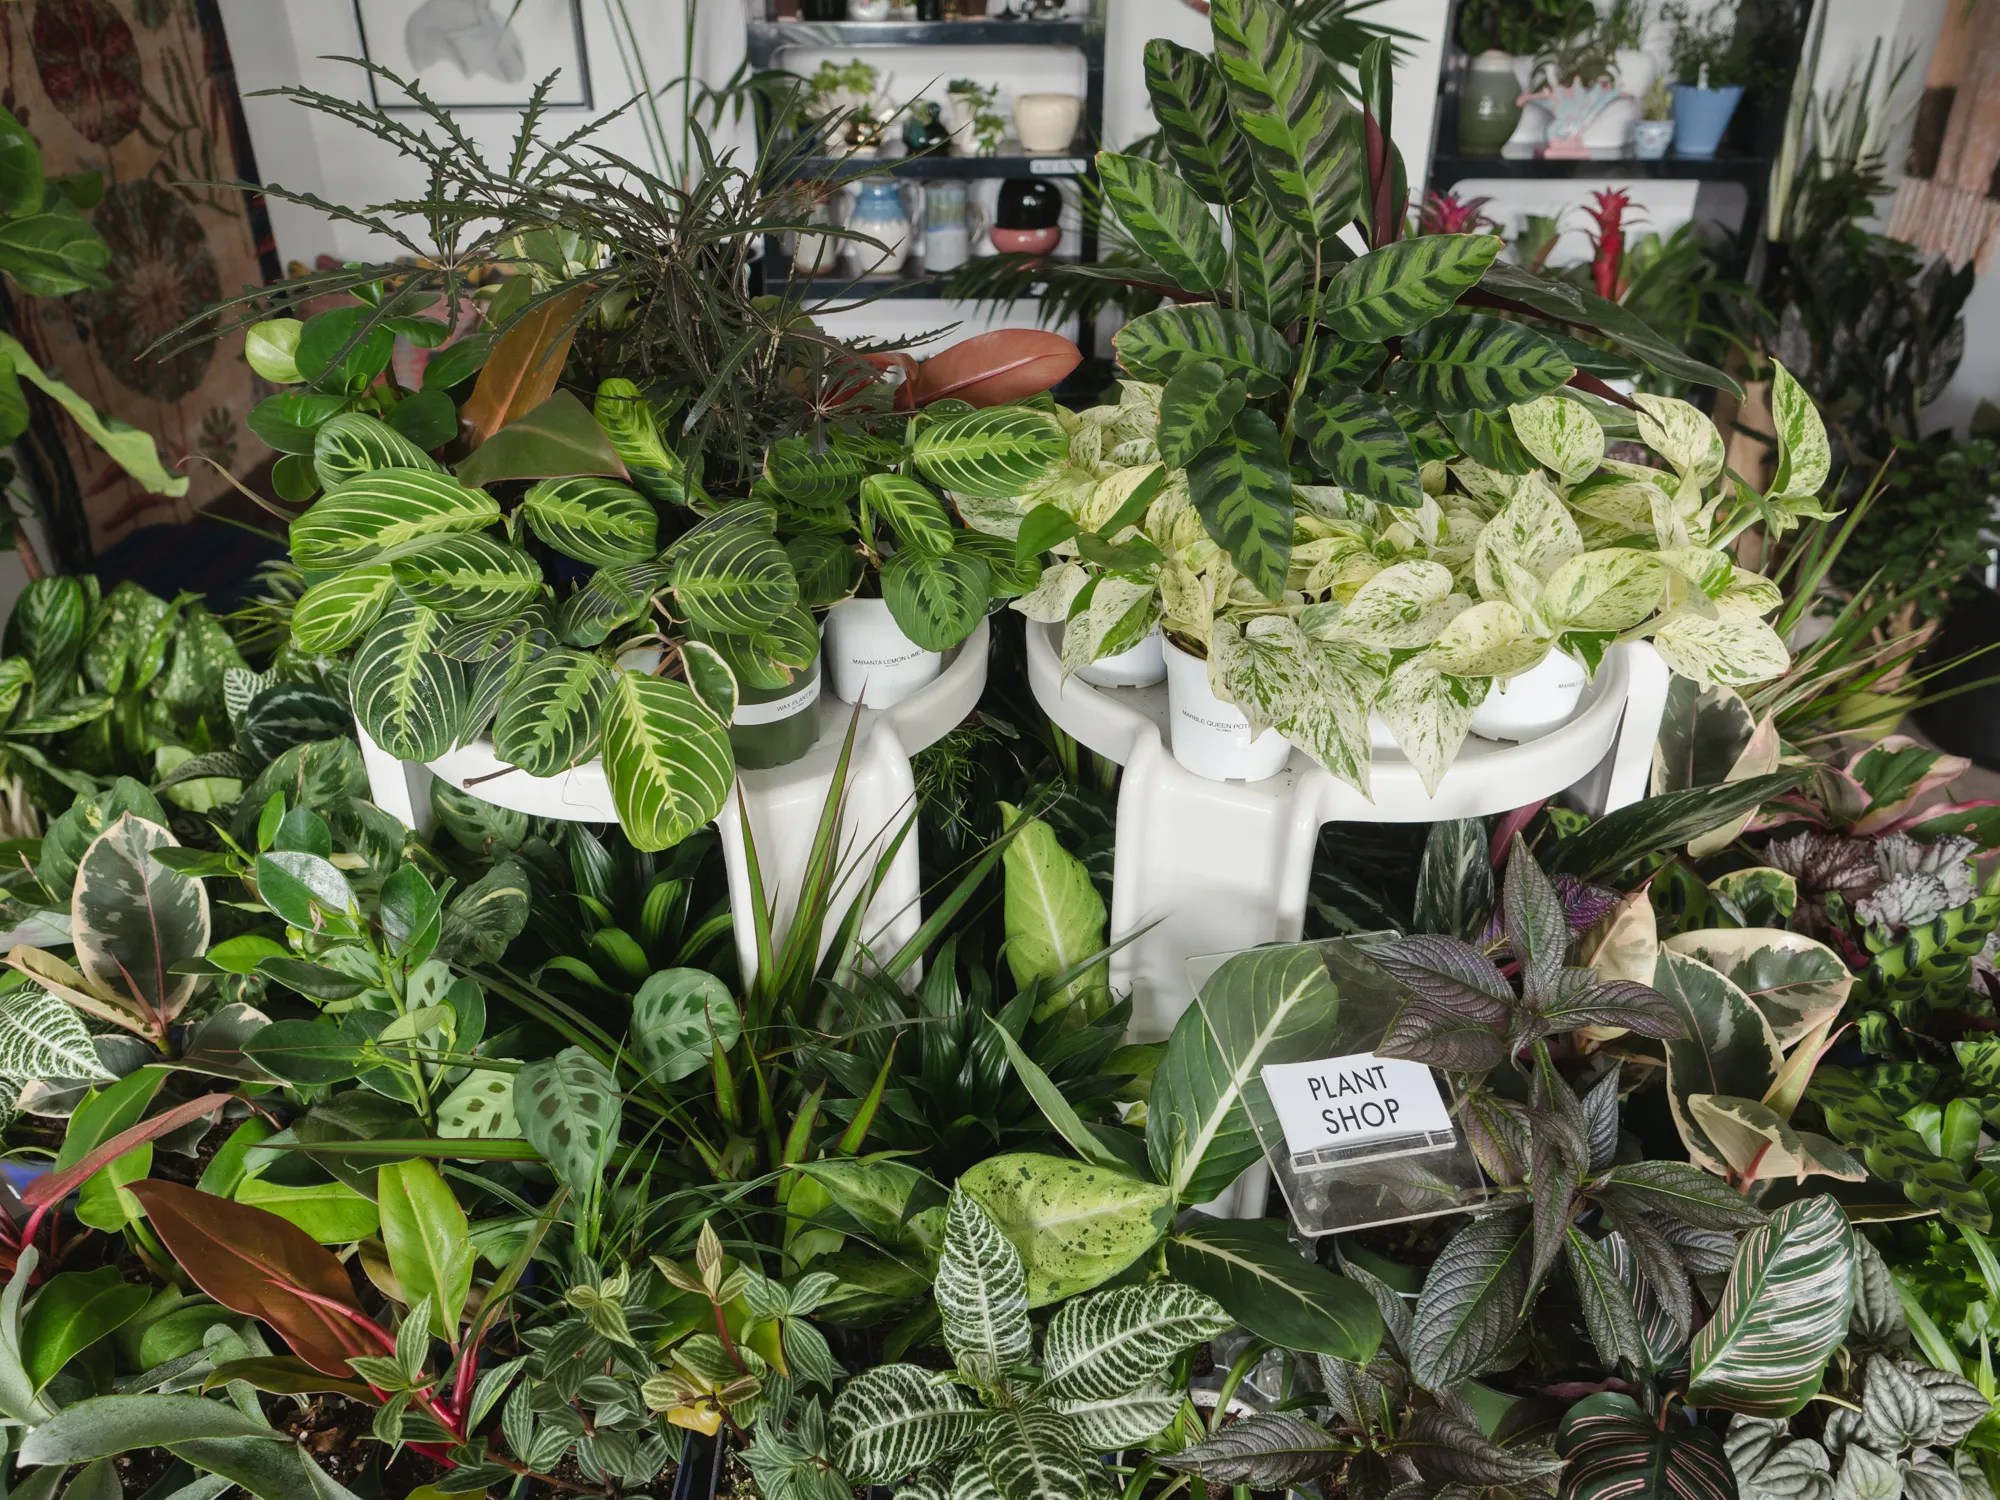 Unusual House Plants For Sale These 7 Awesome Plant Stores Will Help Up Your Interior Design